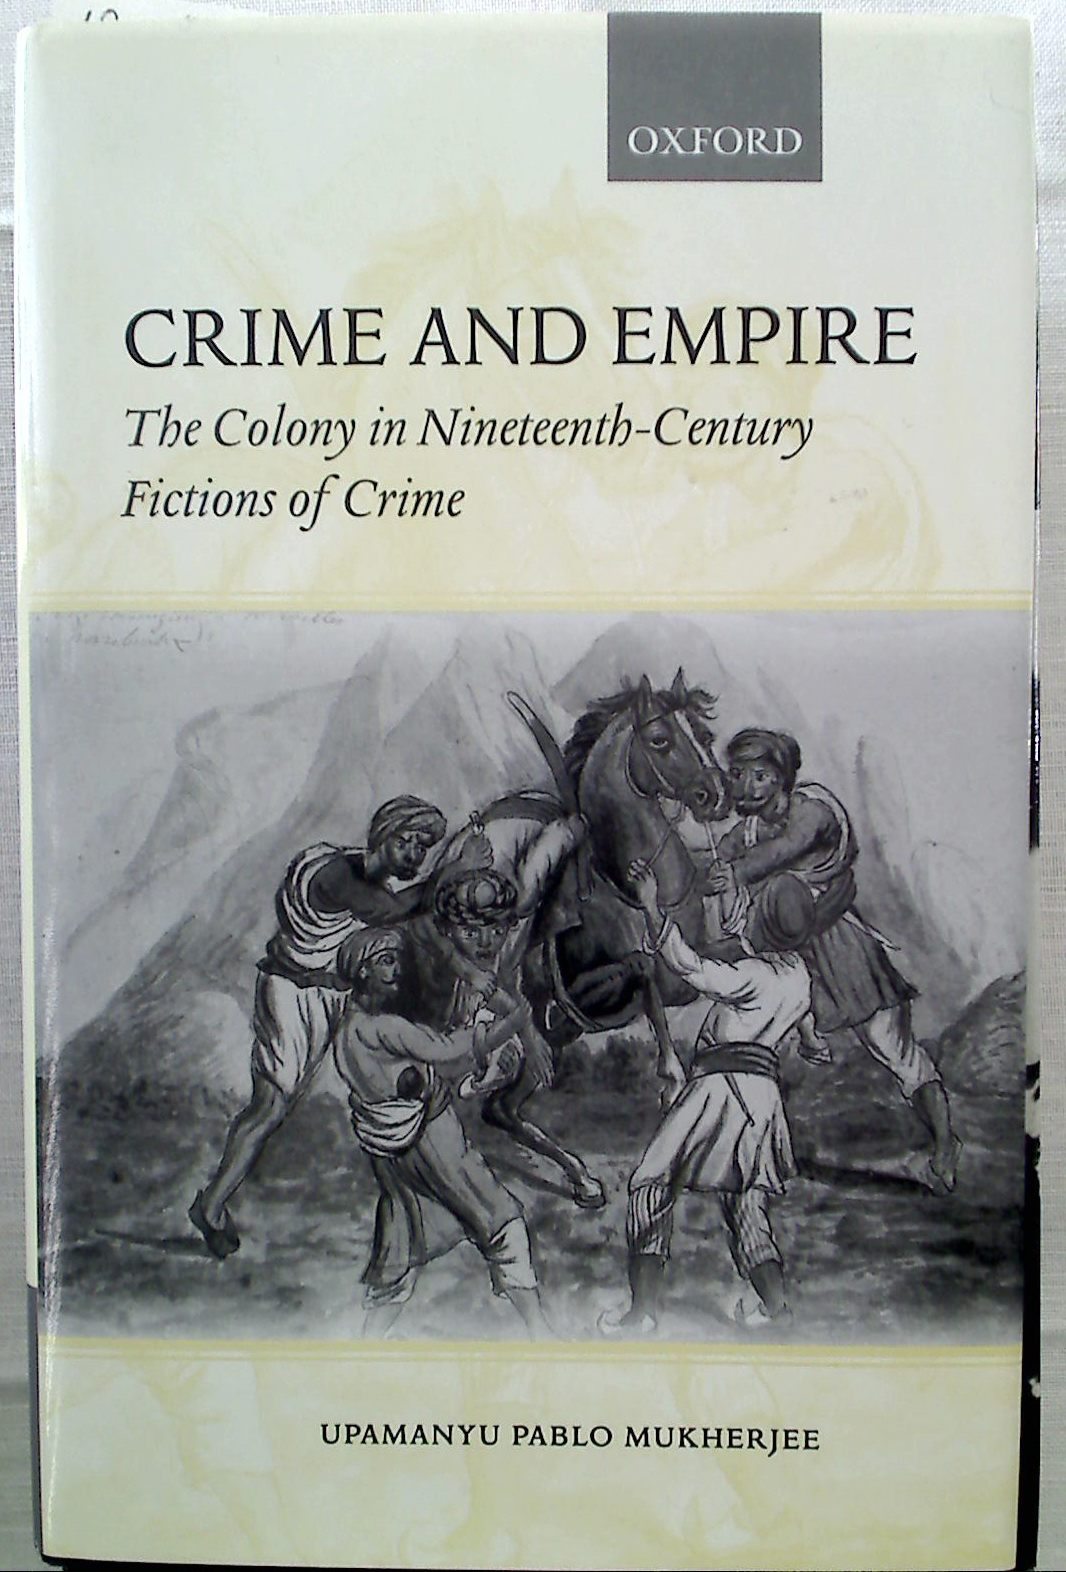 Crime and Empire: The Colony in Nineteenth-Century Fictions of Crime.